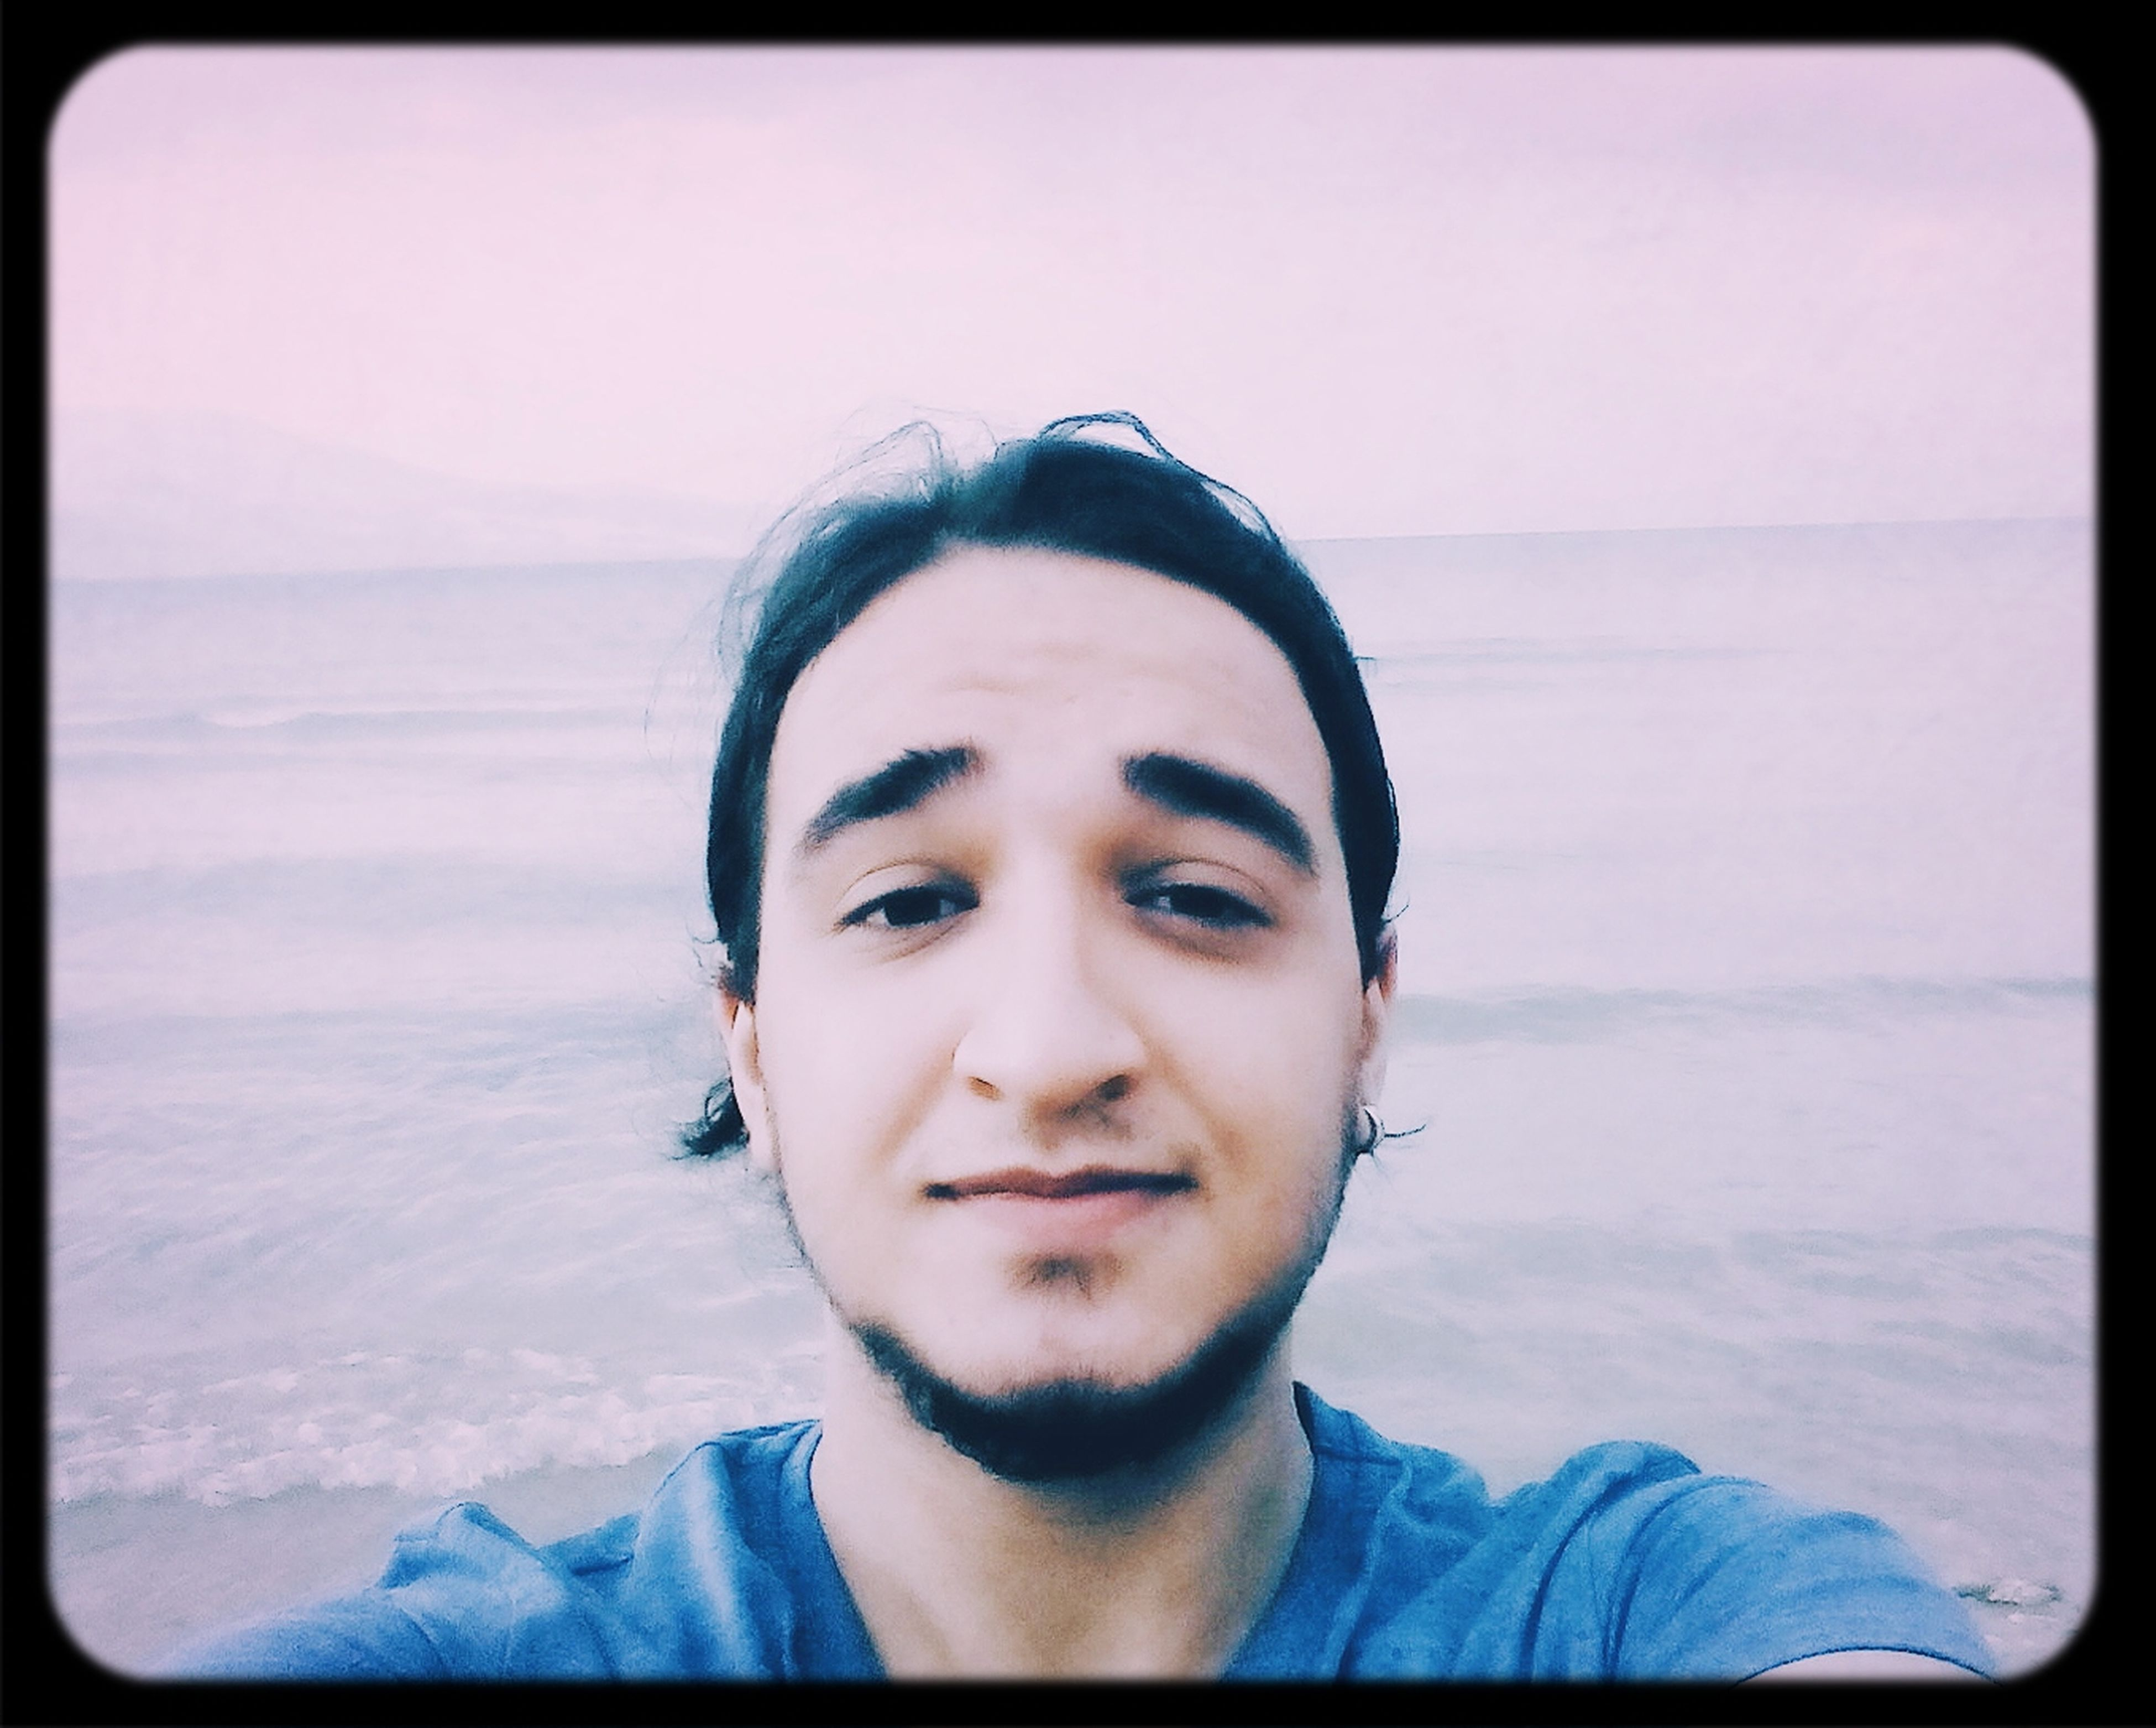 sea, beach, water, portrait, looking at camera, transfer print, auto post production filter, shore, lifestyles, young adult, headshot, person, leisure activity, young men, horizon over water, sand, front view, tranquility